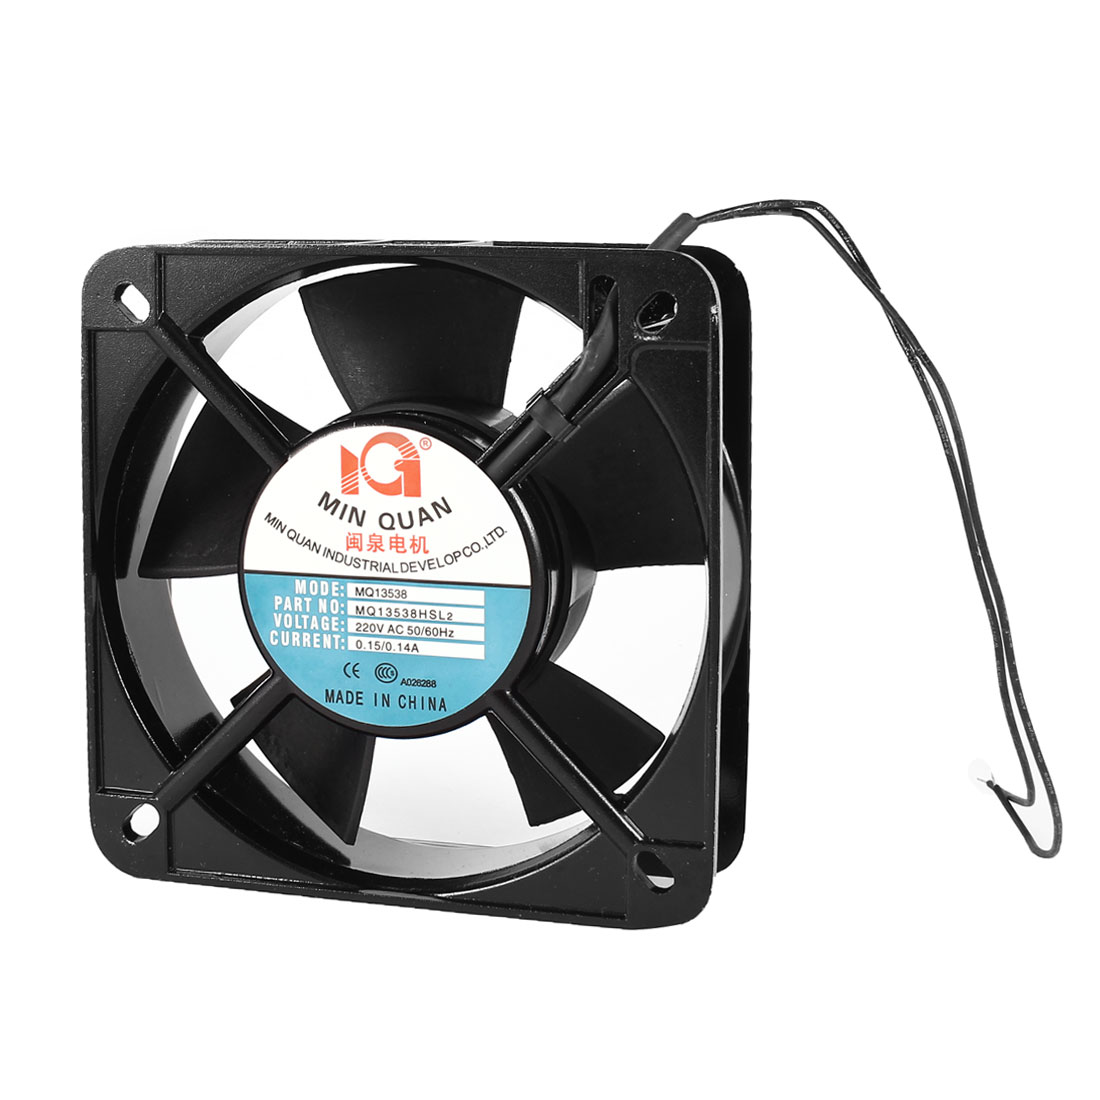 AC 220V 0.15/0.14A 135mmx135mmx40mm Cooling Fan for Computer Case CPU Cooler